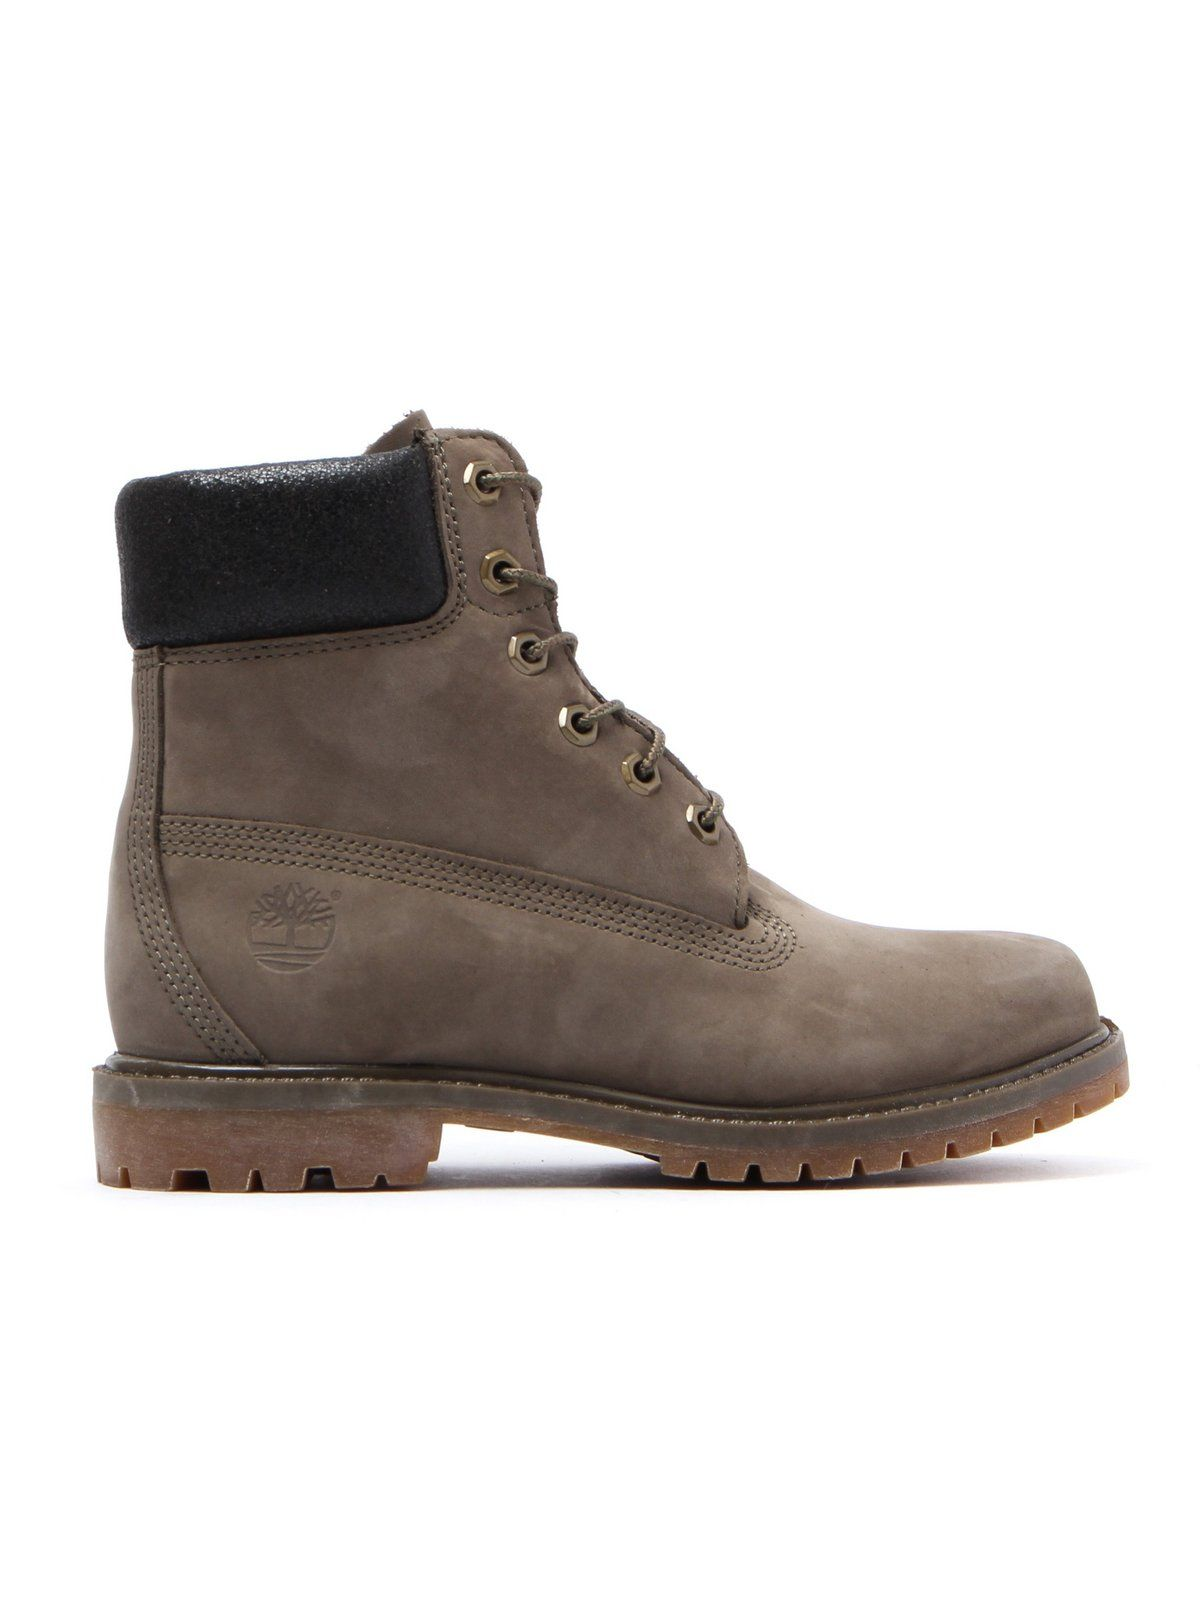 afd1ed47a926 Timberland Women s 6 Inch Premium Boots - Olive Nubuck